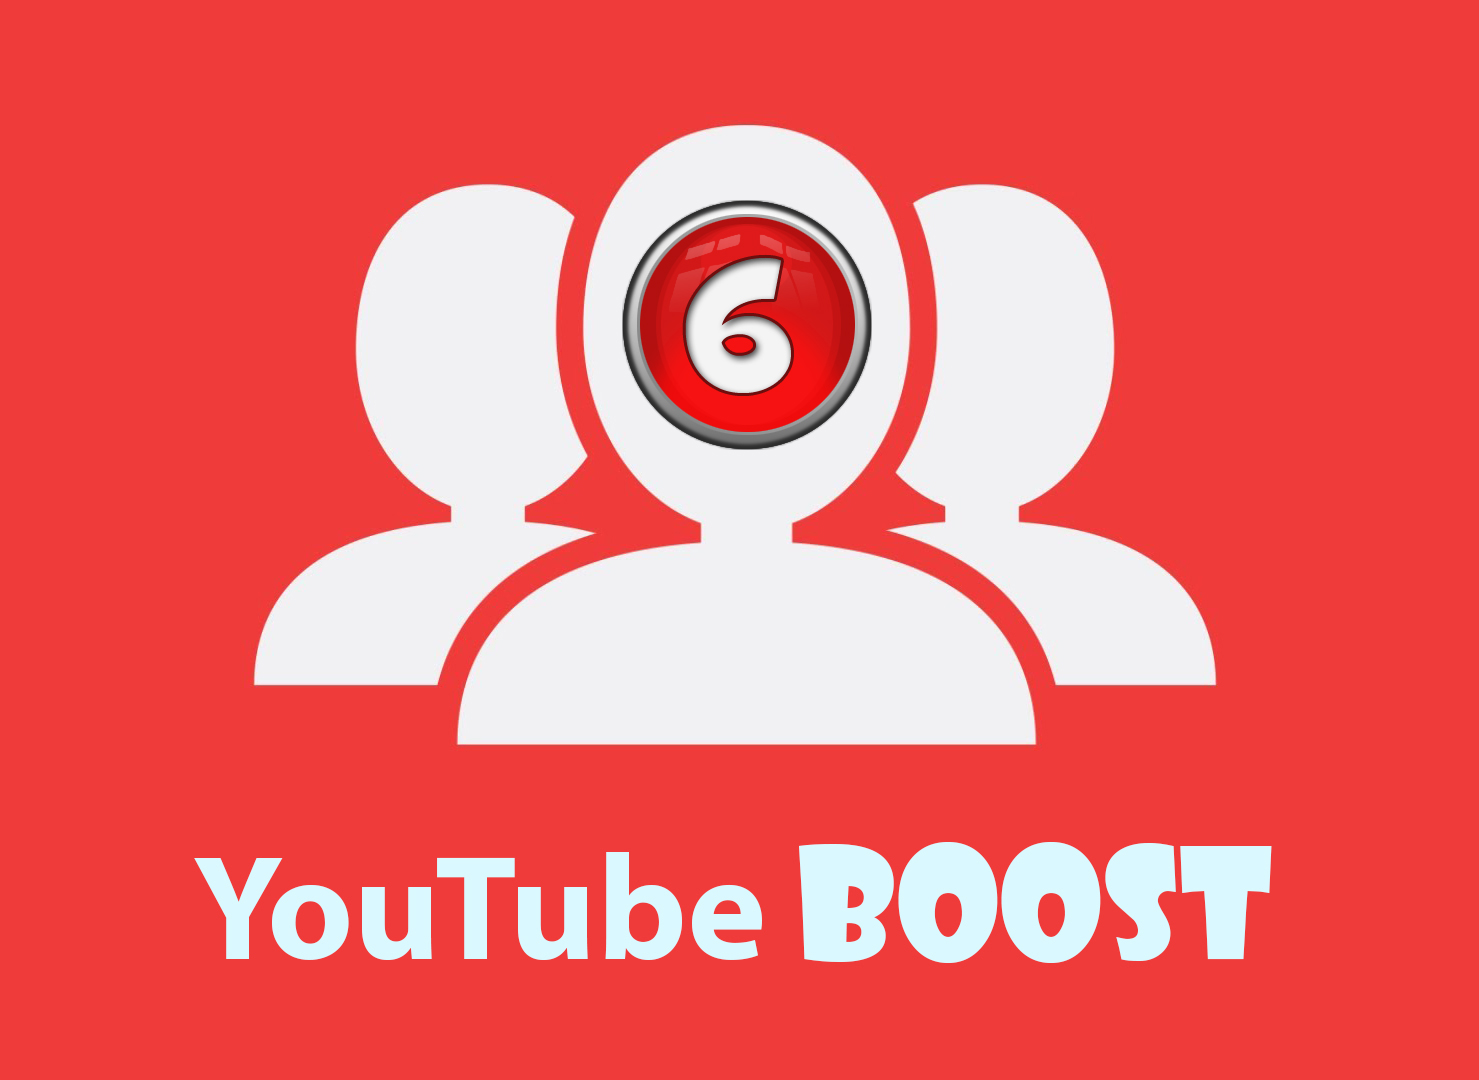 YouTube Boost - 30,000 views, 2000 likes, 500 subscribers, 400 favorites & 50 comments